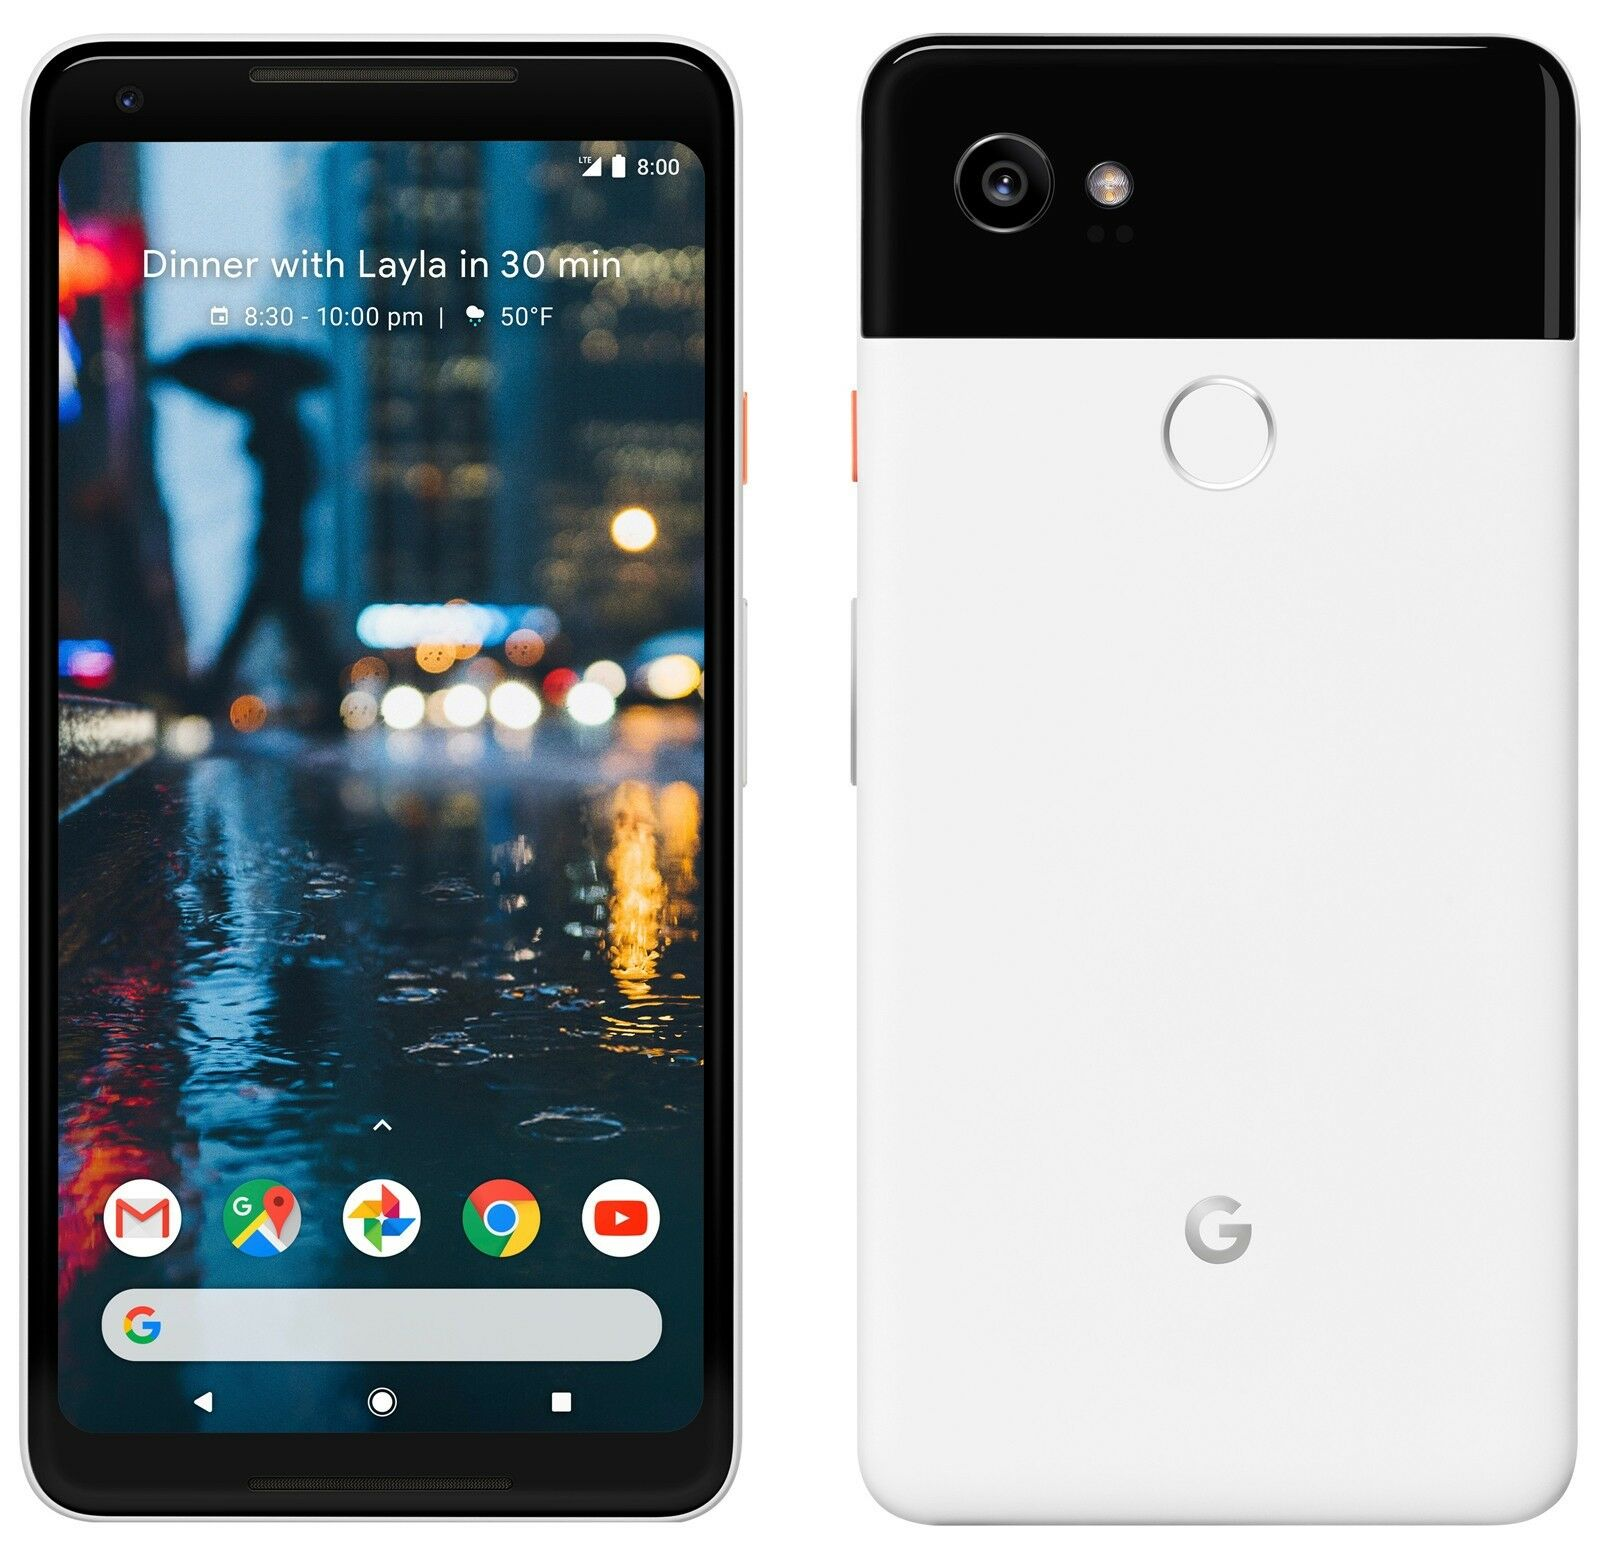 beb247d67d06 Details about Google Pixel 2 XL 64GB Factory Verizon + GSM Unlocked Black  and White Smartphone